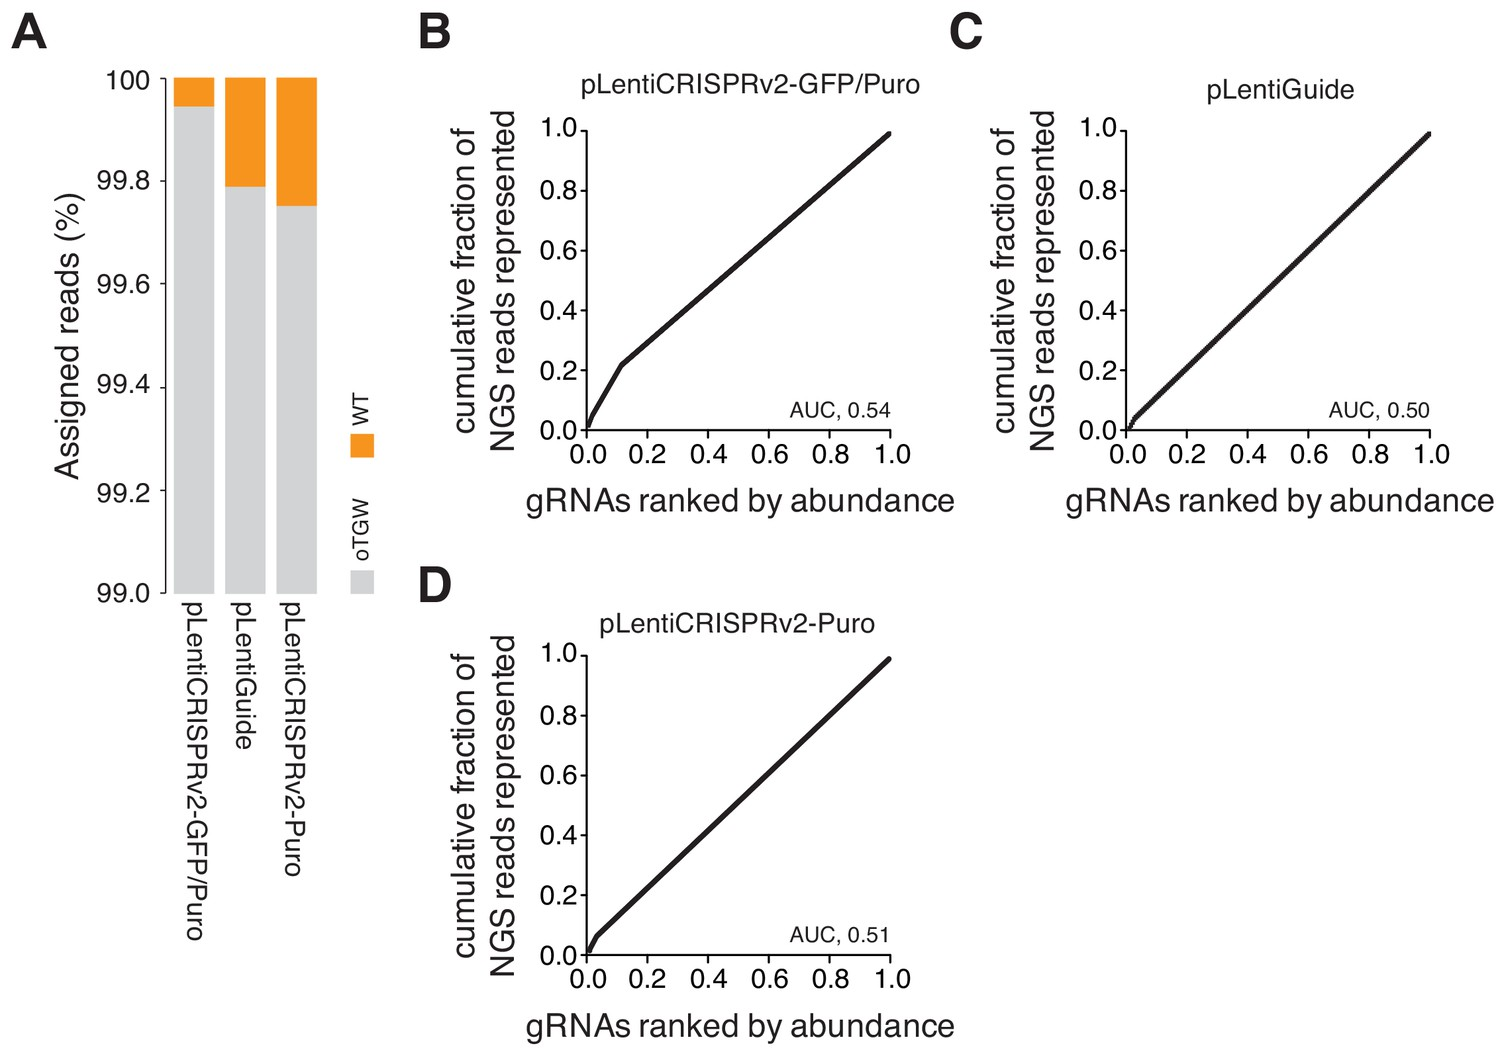 Circular synthesized CRISPR/Cas gRNAs for functional interrogations